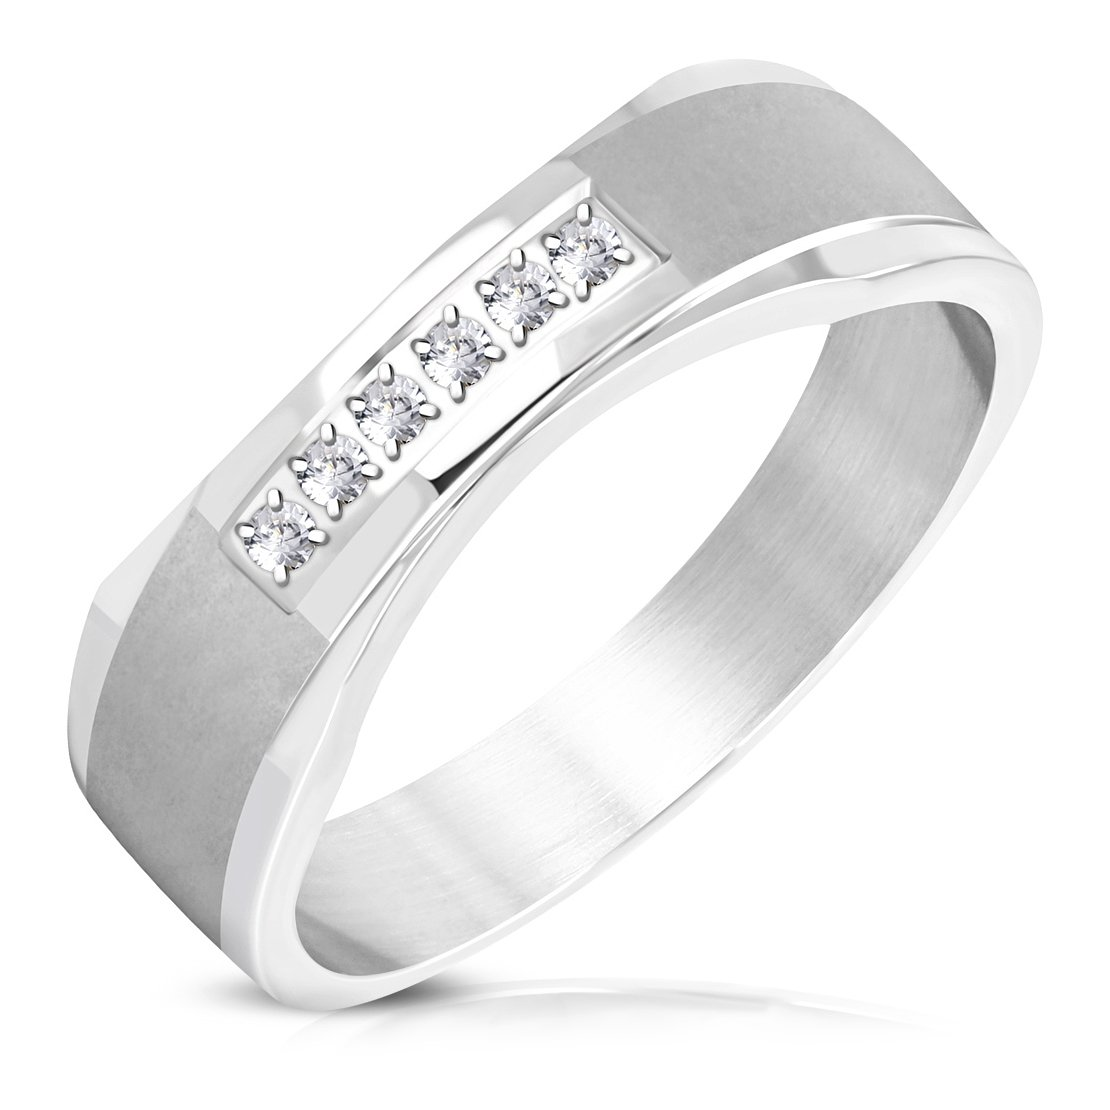 Stainless Steel Pave-Set Flat Band Ring with Clear CZ